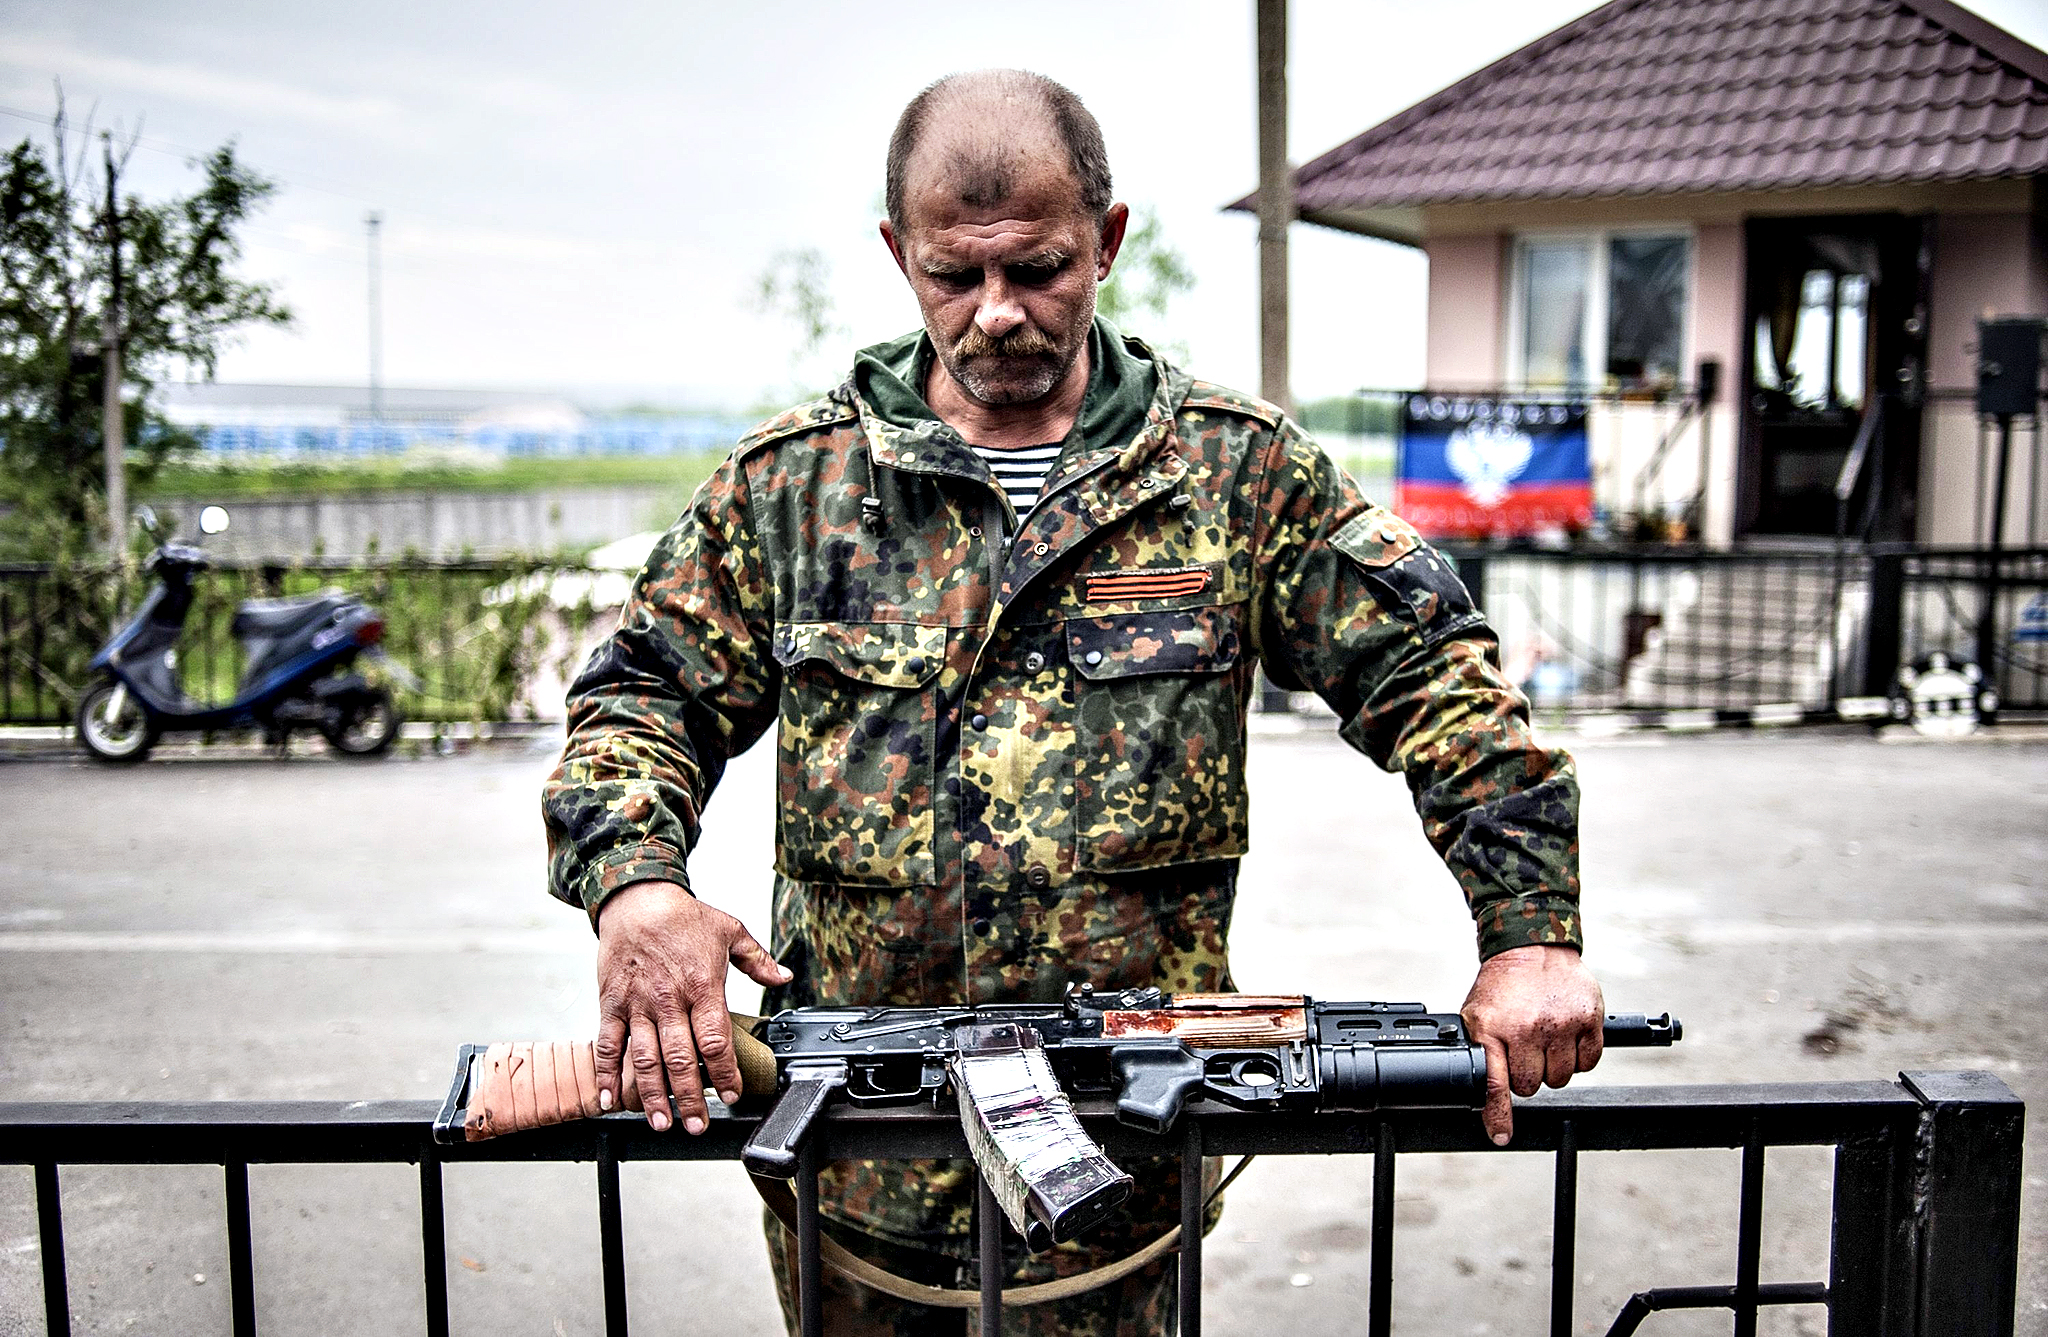 An armed pro-Russian militant stands at a checkpoint near Slavyansk, Ukraine. The secession referendum on 11 May, allowed the three million residents of the provinces of Luhansk and Donetsk vote on whether they want to remain part of Ukraine. Russian-speakers and supporters of Moscow have been rallying in the region since March, when a referendum on independence led to Russia's annexation of Crimea.